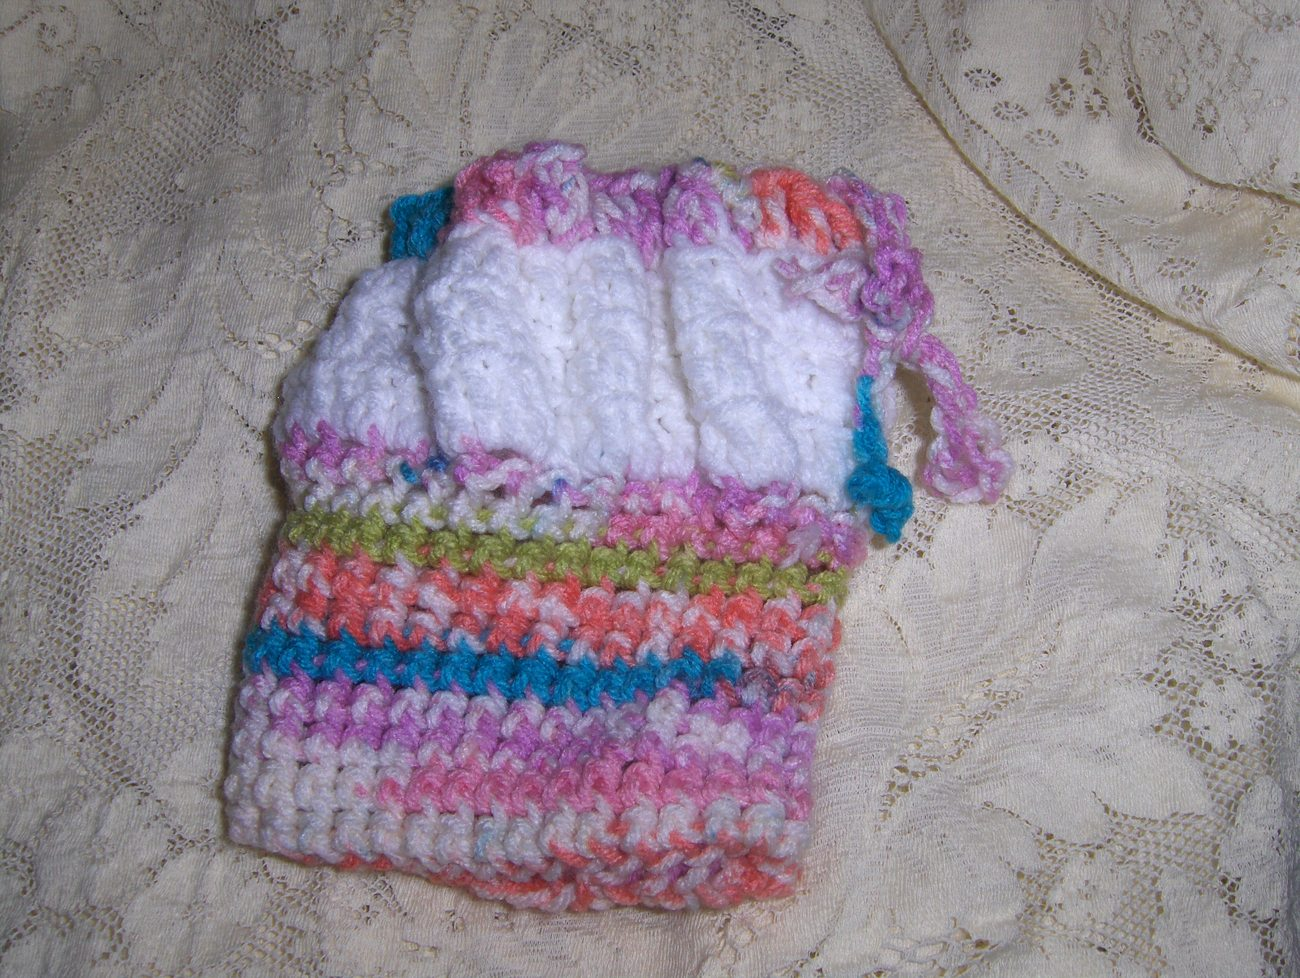 Handmade Multicolored Crocheted Childs Purse/Doll Bassinet